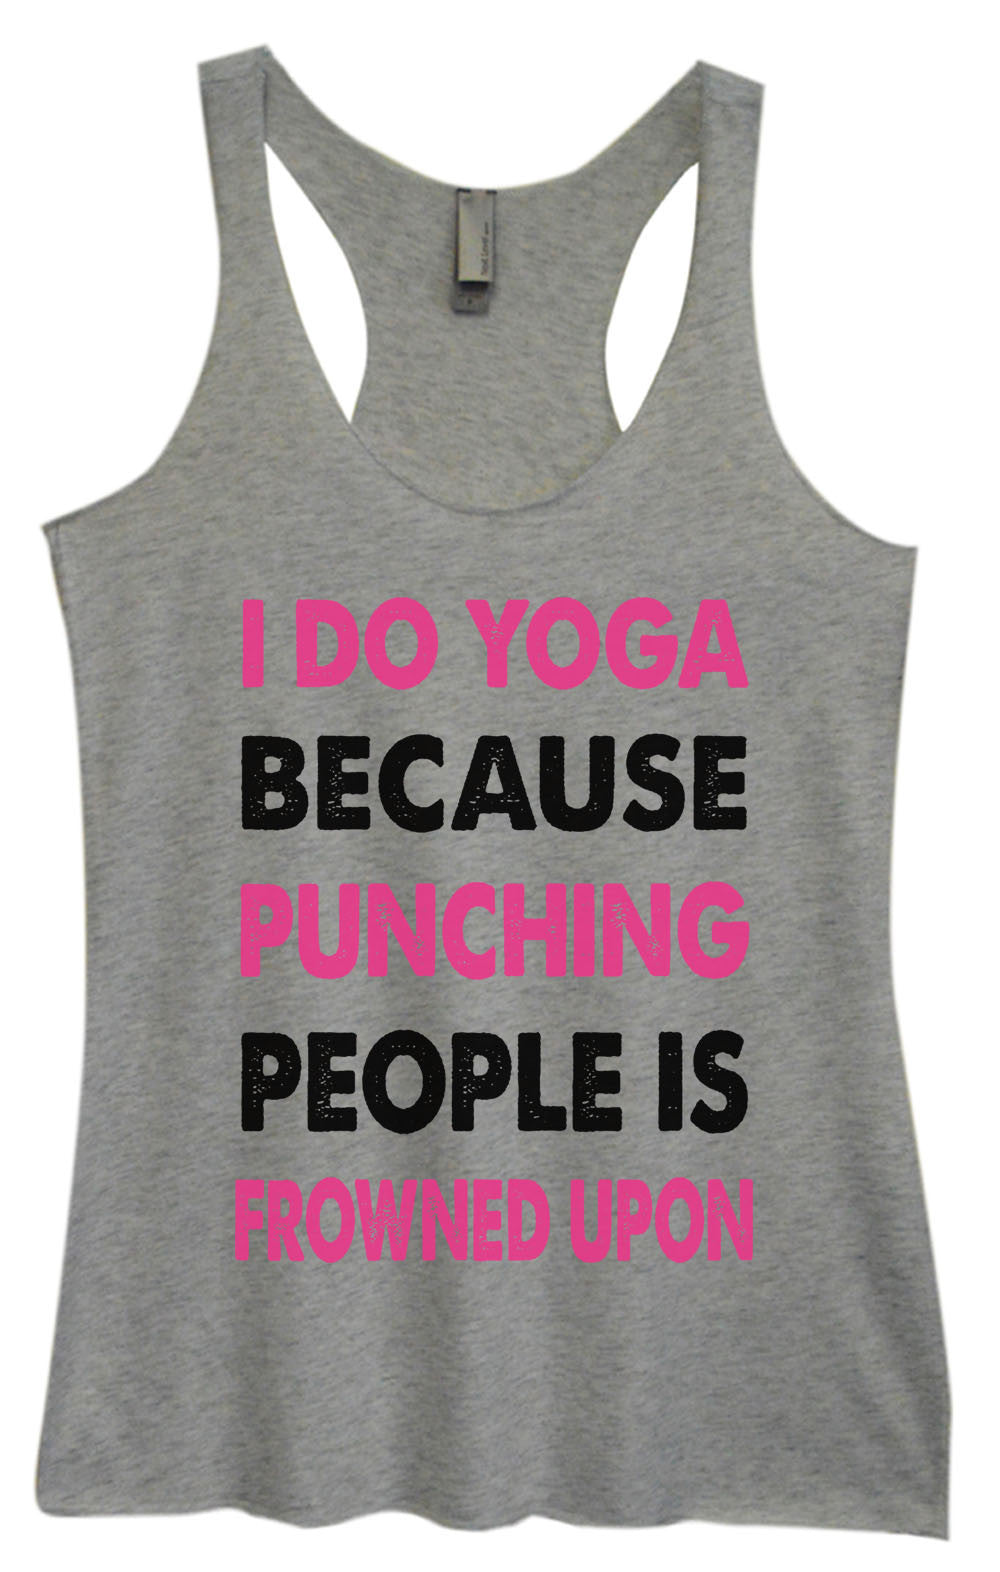 Womens Fashion Triblend Tank Top - I Do Yoga Because Punching People Is Frowned Upon - Tri-685 - Funny Shirts Tank Tops Burnouts and Triblends  - 2